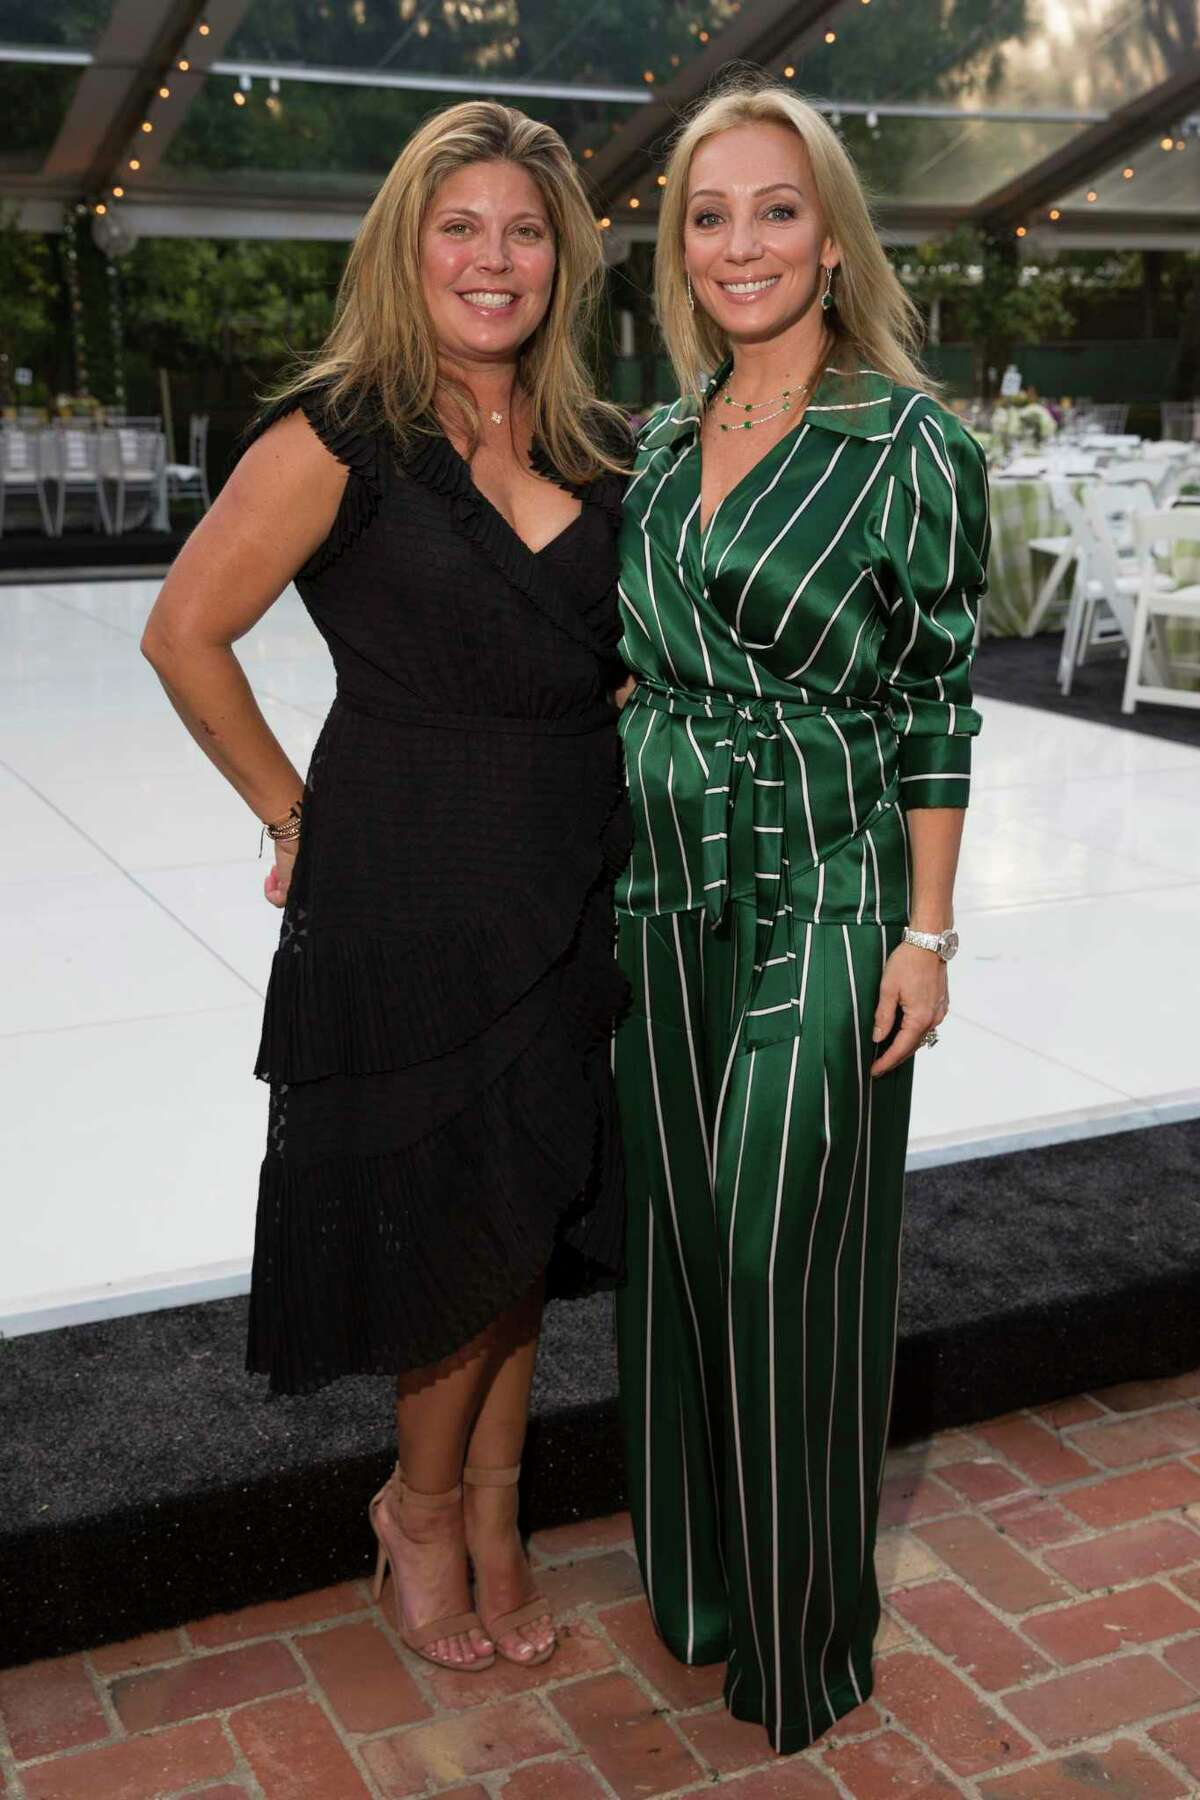 Lori Shellist, left, Brandy Benditz and pose for a photograph at the 25th Annual Trees for Houston Root Ball at The Bayou Club on Thursday, April 4, 2019, in Houston.